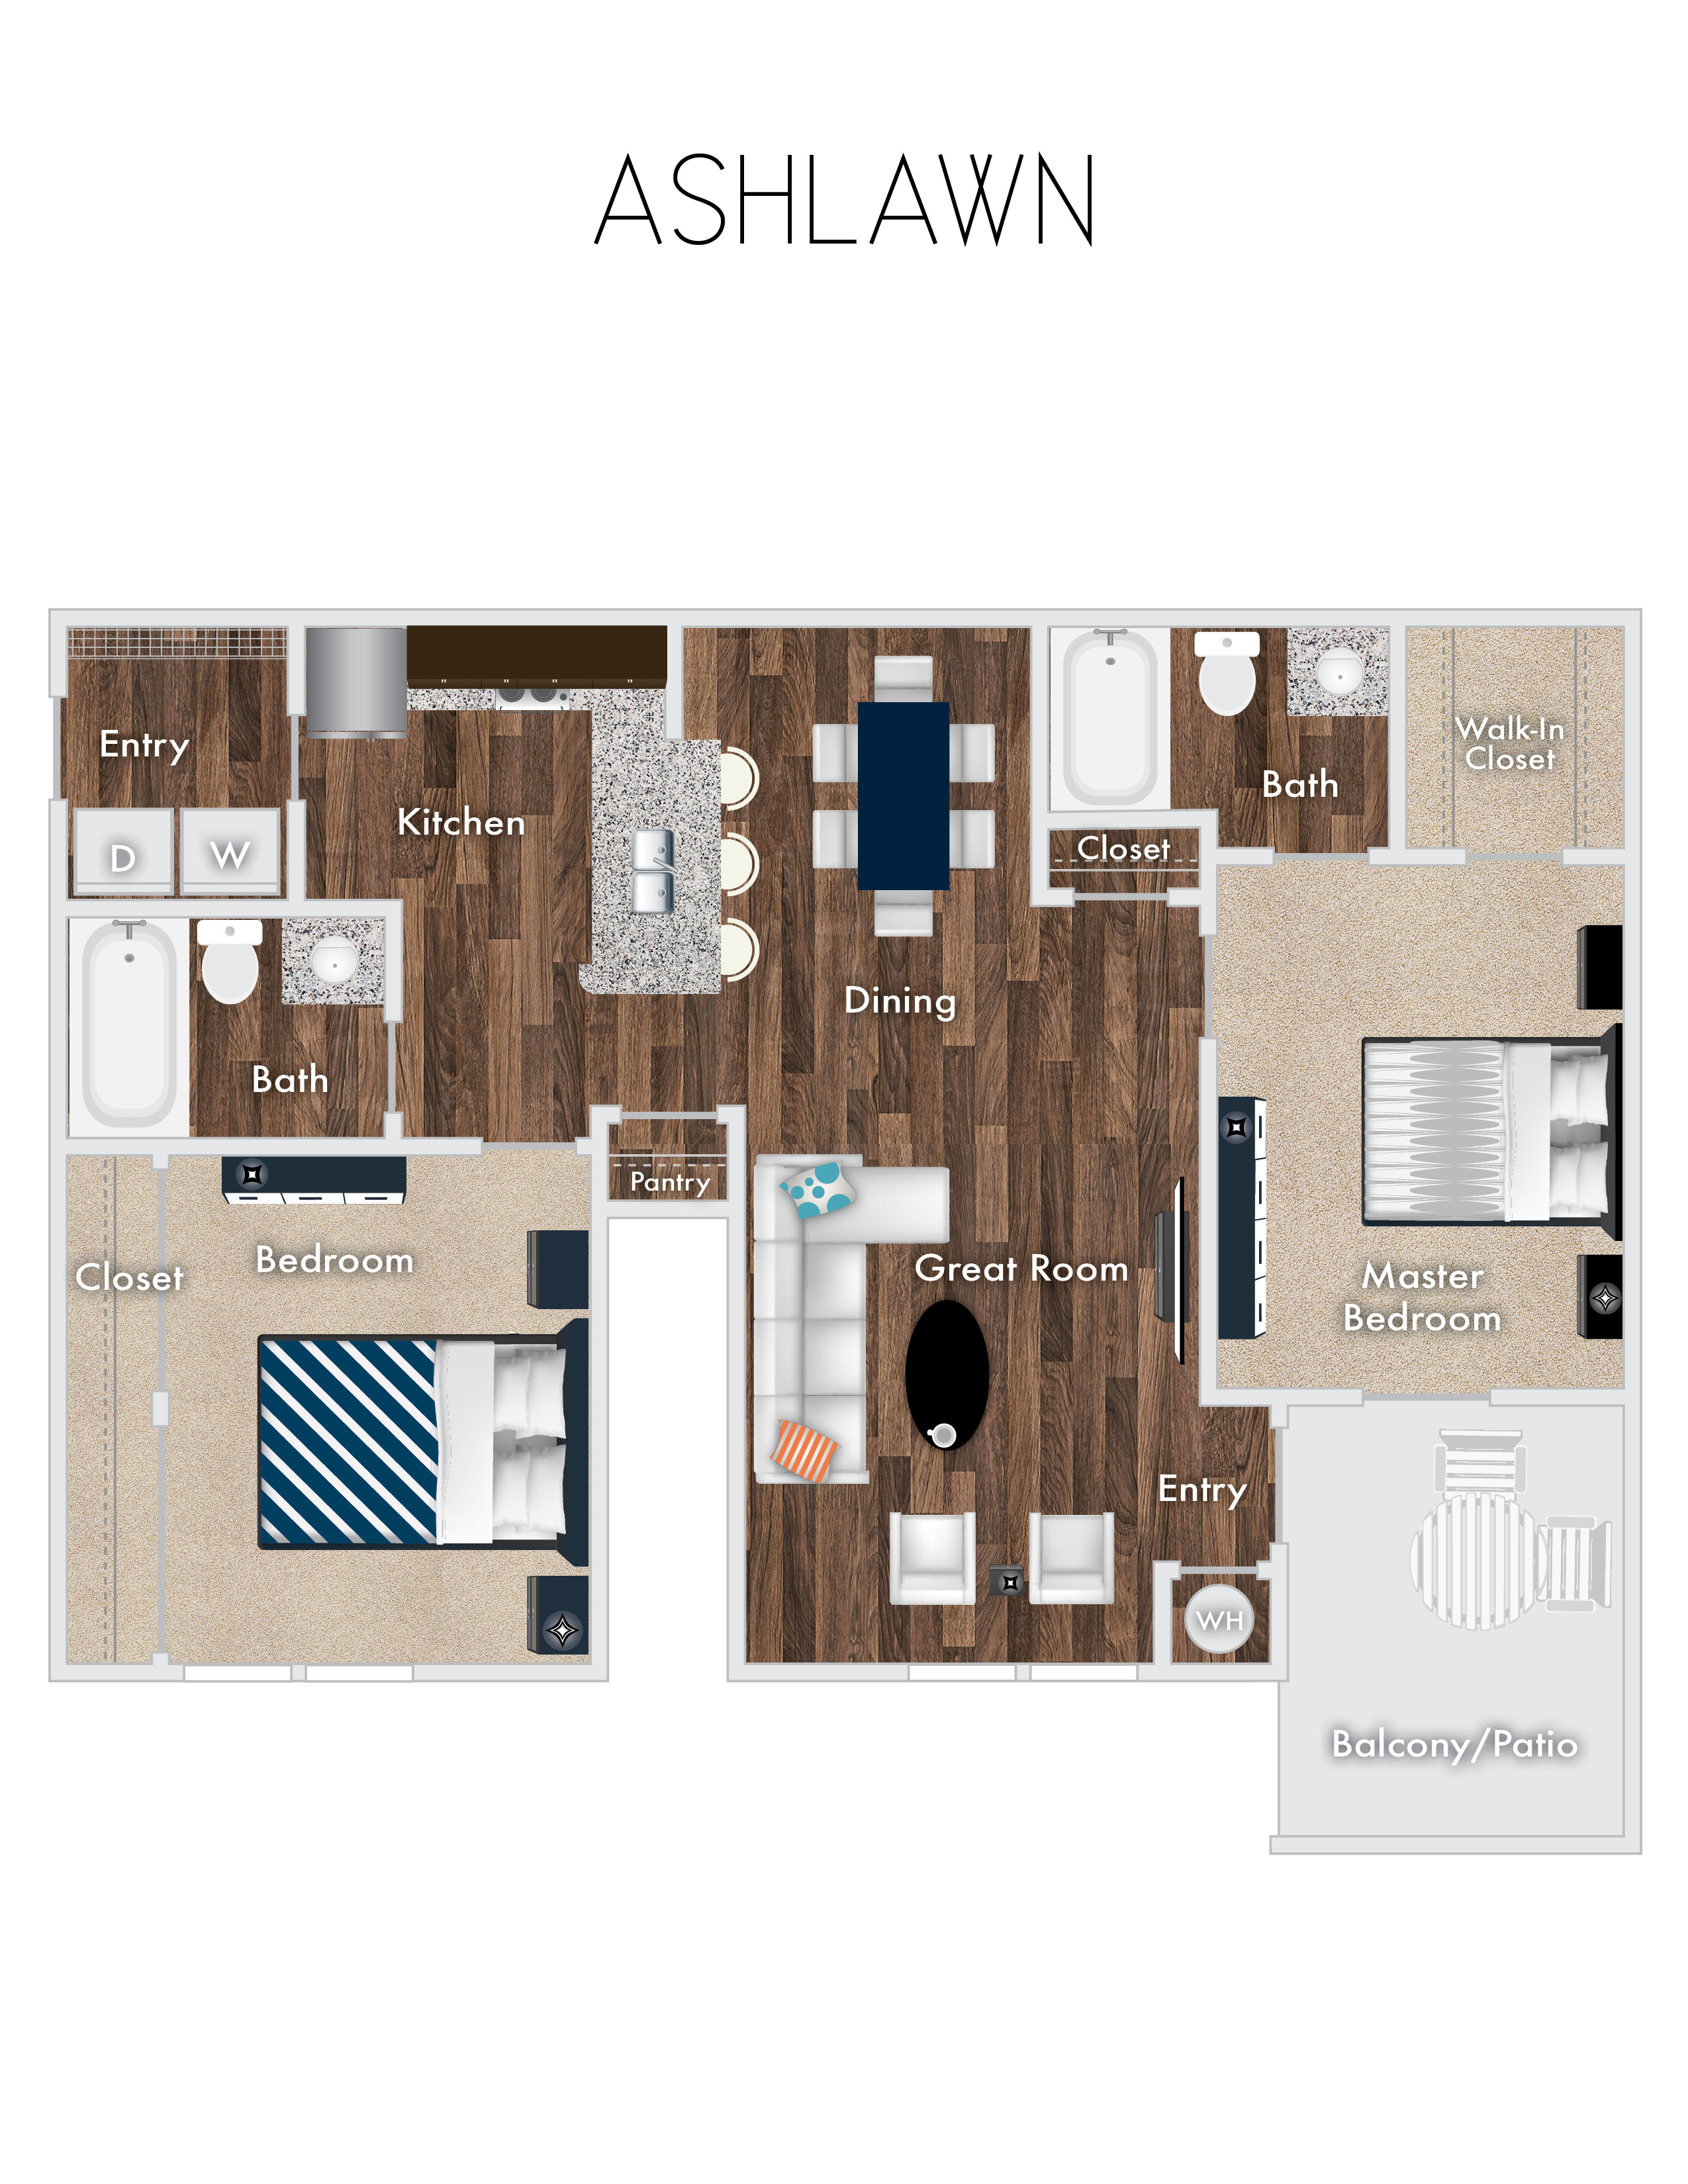 Ashlawn Floor Plan, 2 Bedroom, 2 Bath with optional garage.